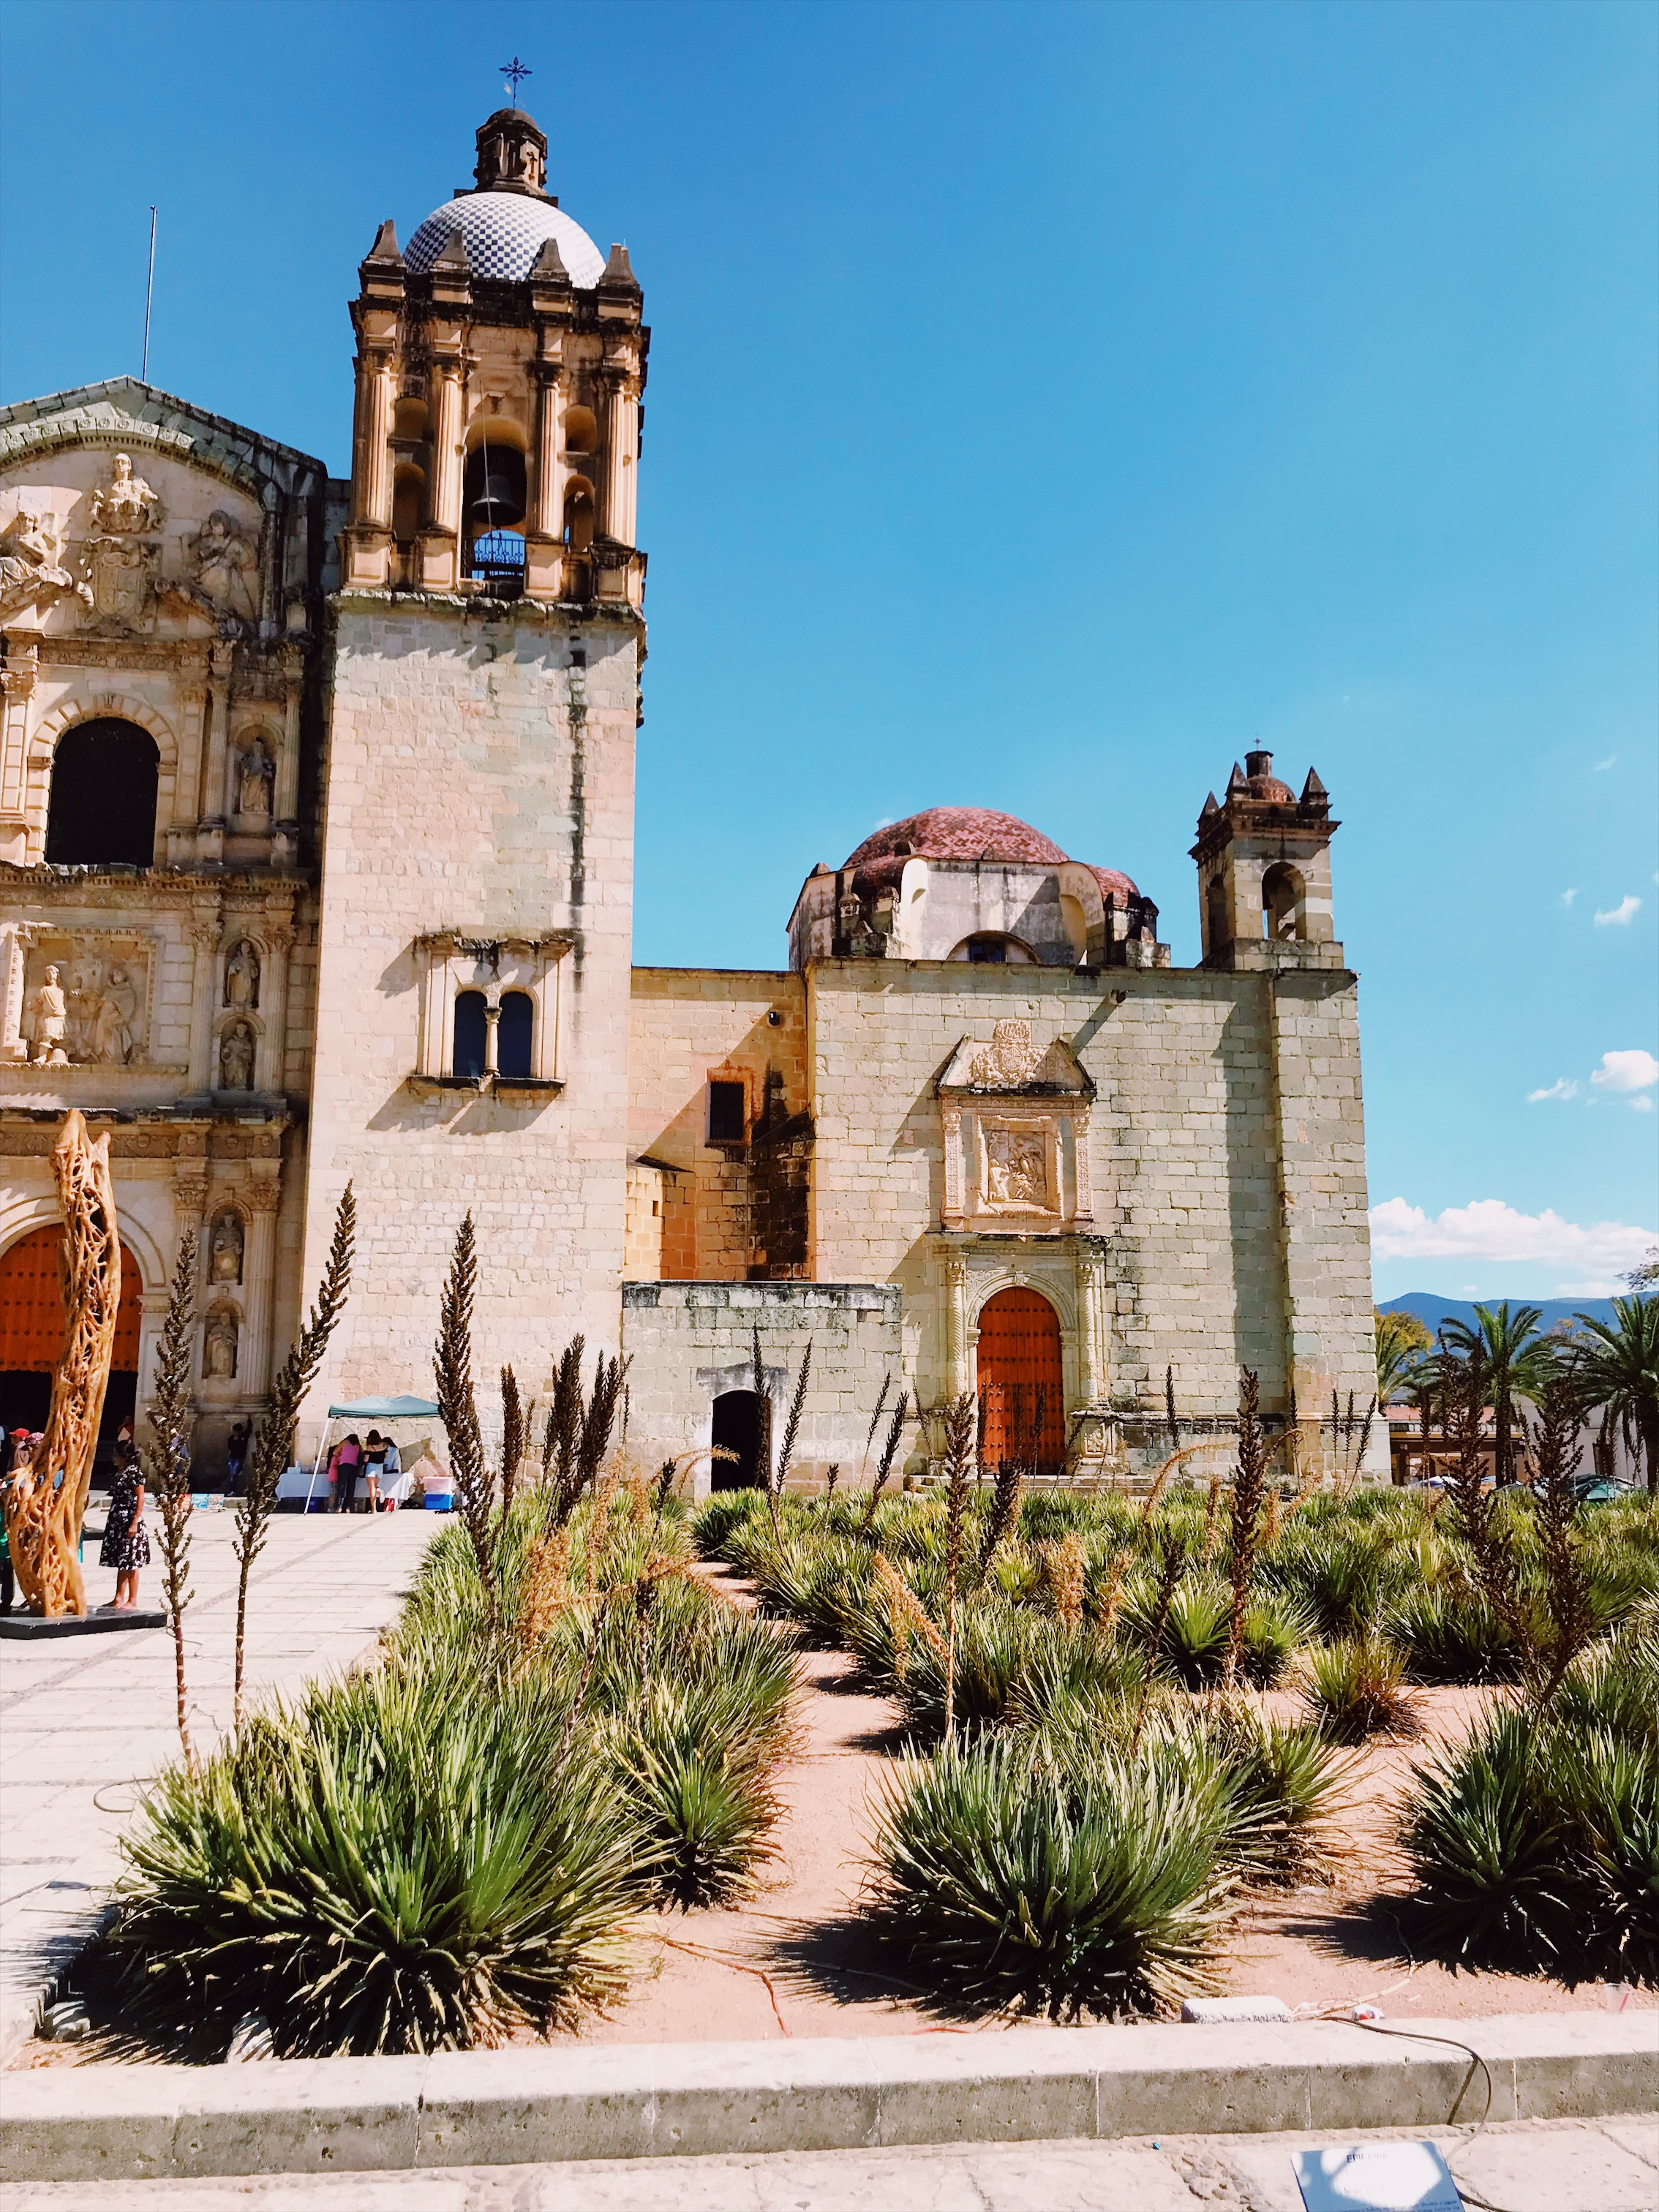 Oaxaca City - THIS VIBRANT CITY OFFERS MUCH MORE THAN YOU COULD POSSIBLY HOPE TO SEE IN A WEEK. ENJOY A WEEK OF INCREDIBLE FOOD AND BUSTLING MARKETS.CHOOSE FROM MEZCAL TOURS, ARTISANAL CRAFT TOURS, ANCIENT RUINS & NATURAL HOT SPRINGS. KIDS WILL LEARN ABOUT TRADITIONAL FABRIC DYING TECHNIQUES, WEAVING, FOOD PREPARATION, ART & STORY-TELLING, DANCING AND MUSIC. COMING SOON!